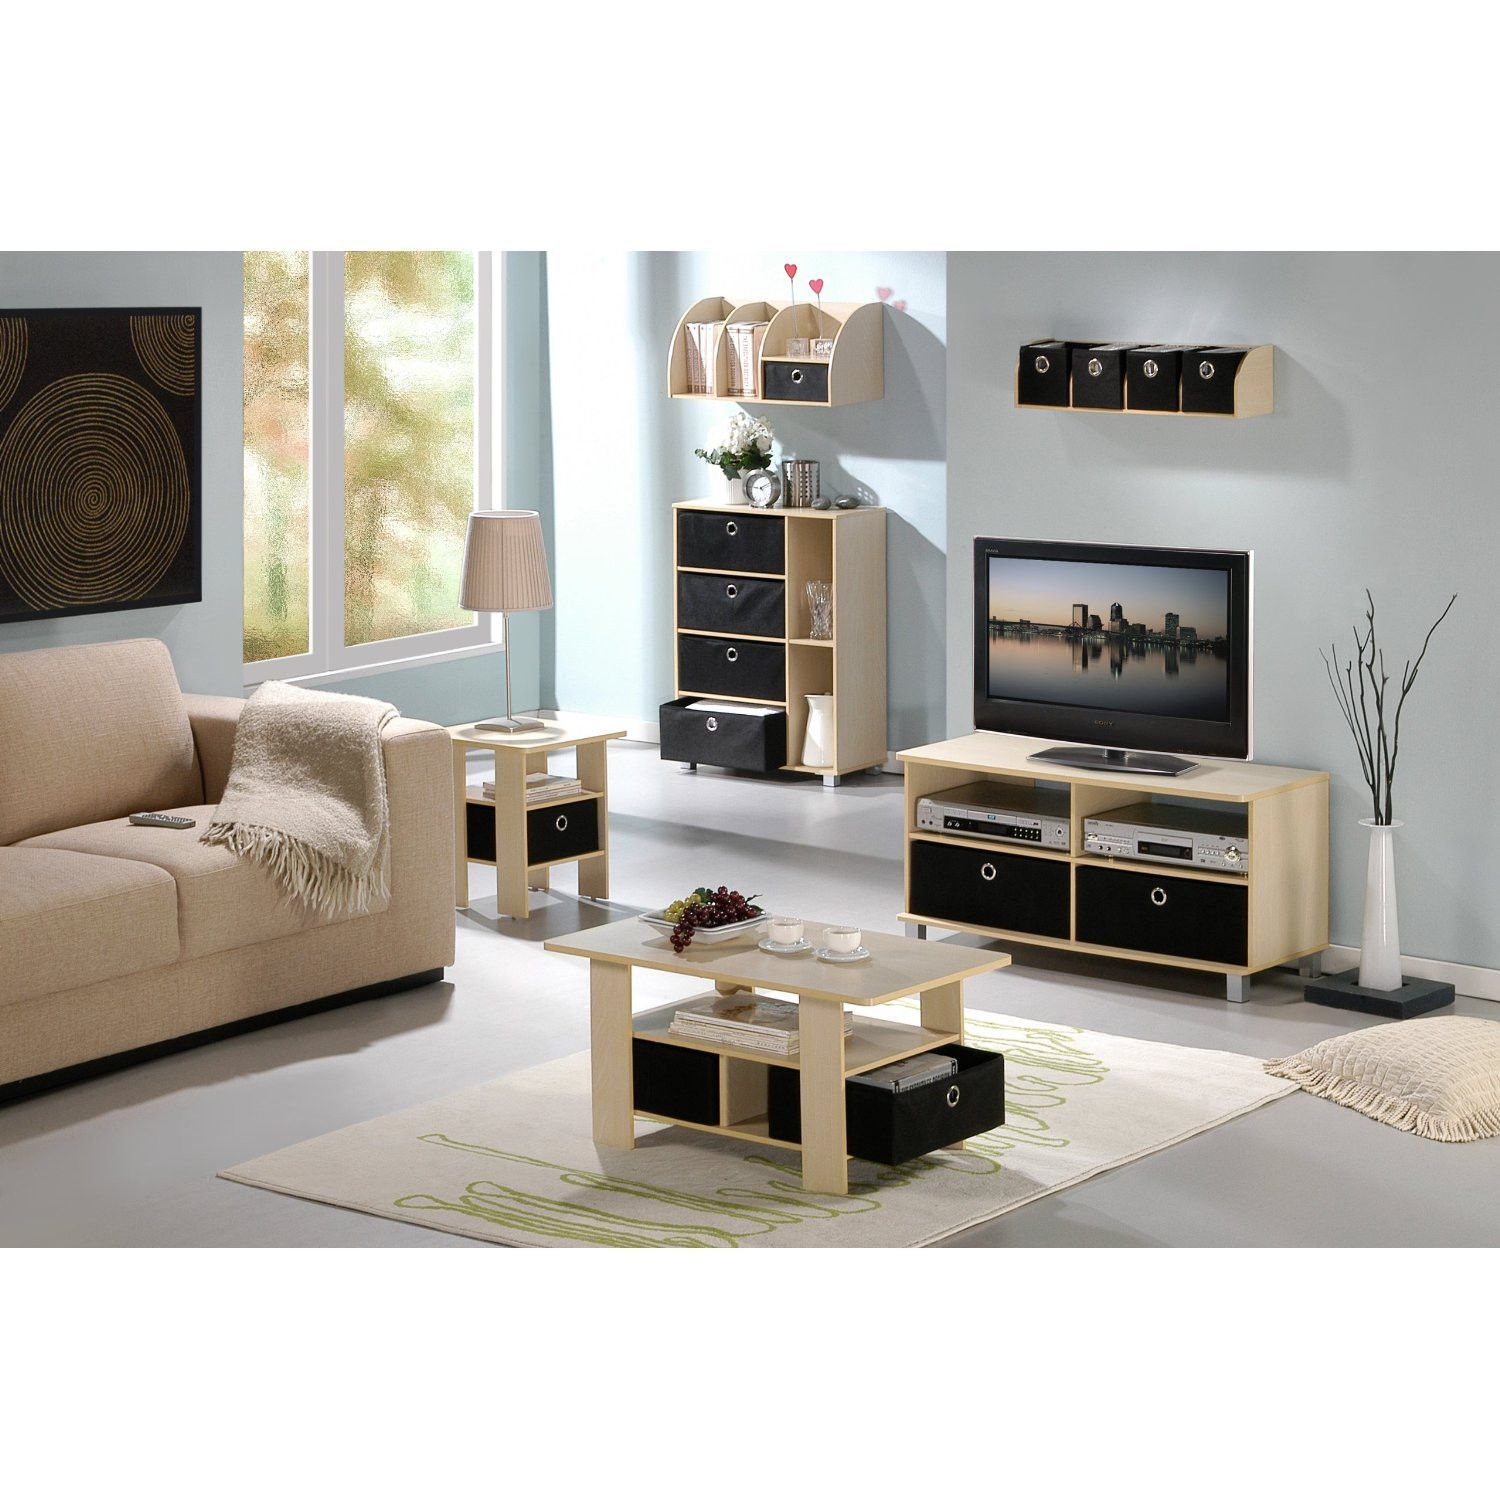 Furinno Coffee Table w Bin Drawer Steam Beech Black SBE BK